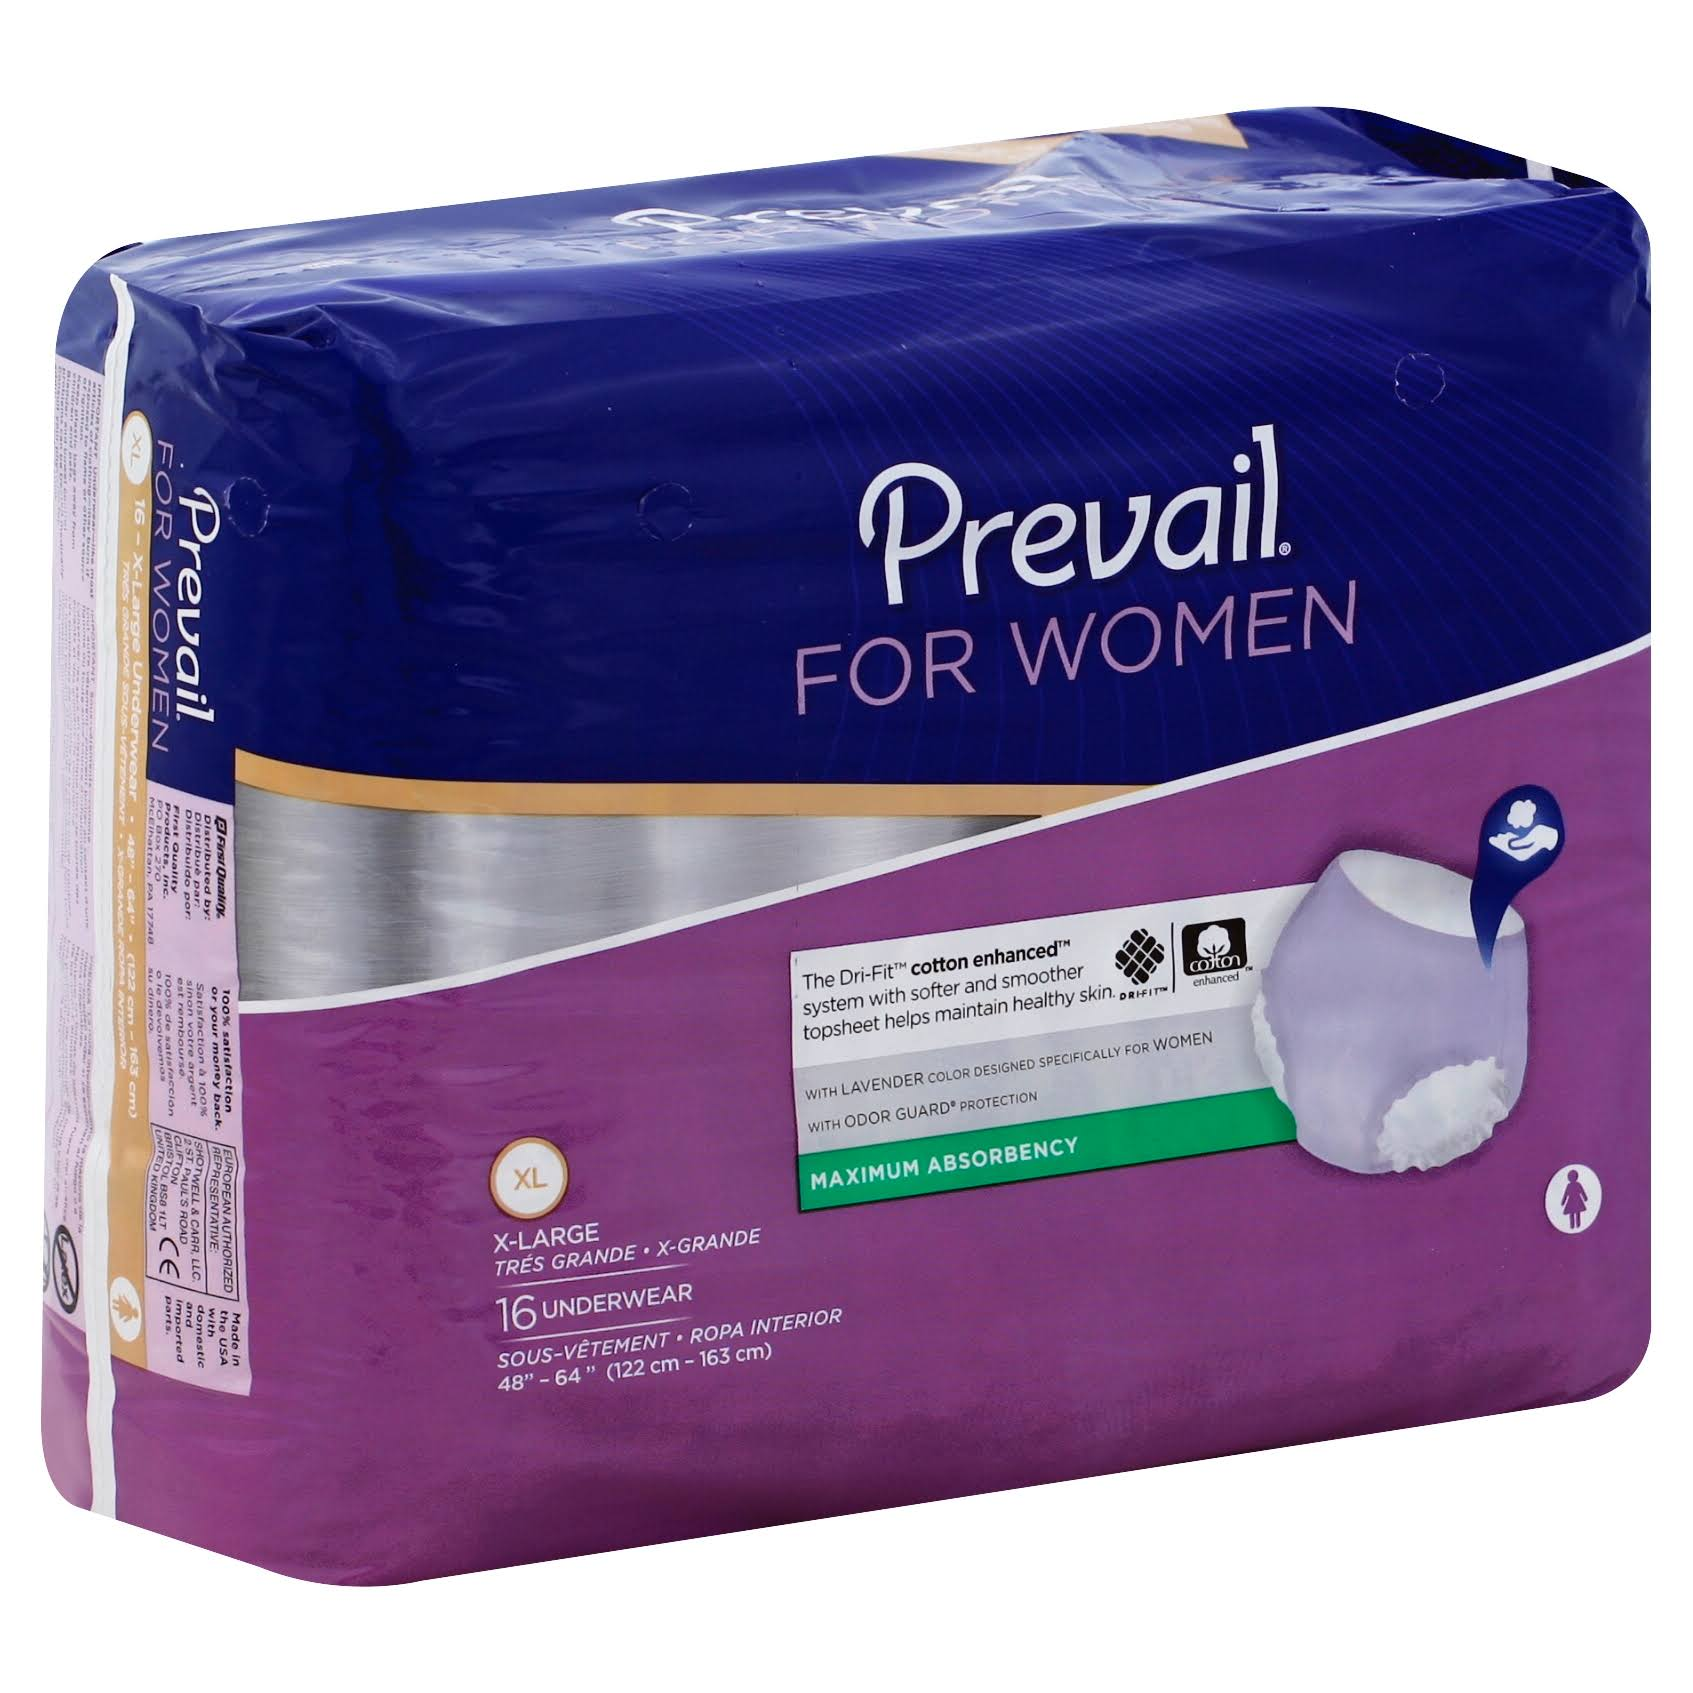 Prevail Heavy Absorbency Underwear for Women - XLarge, x16